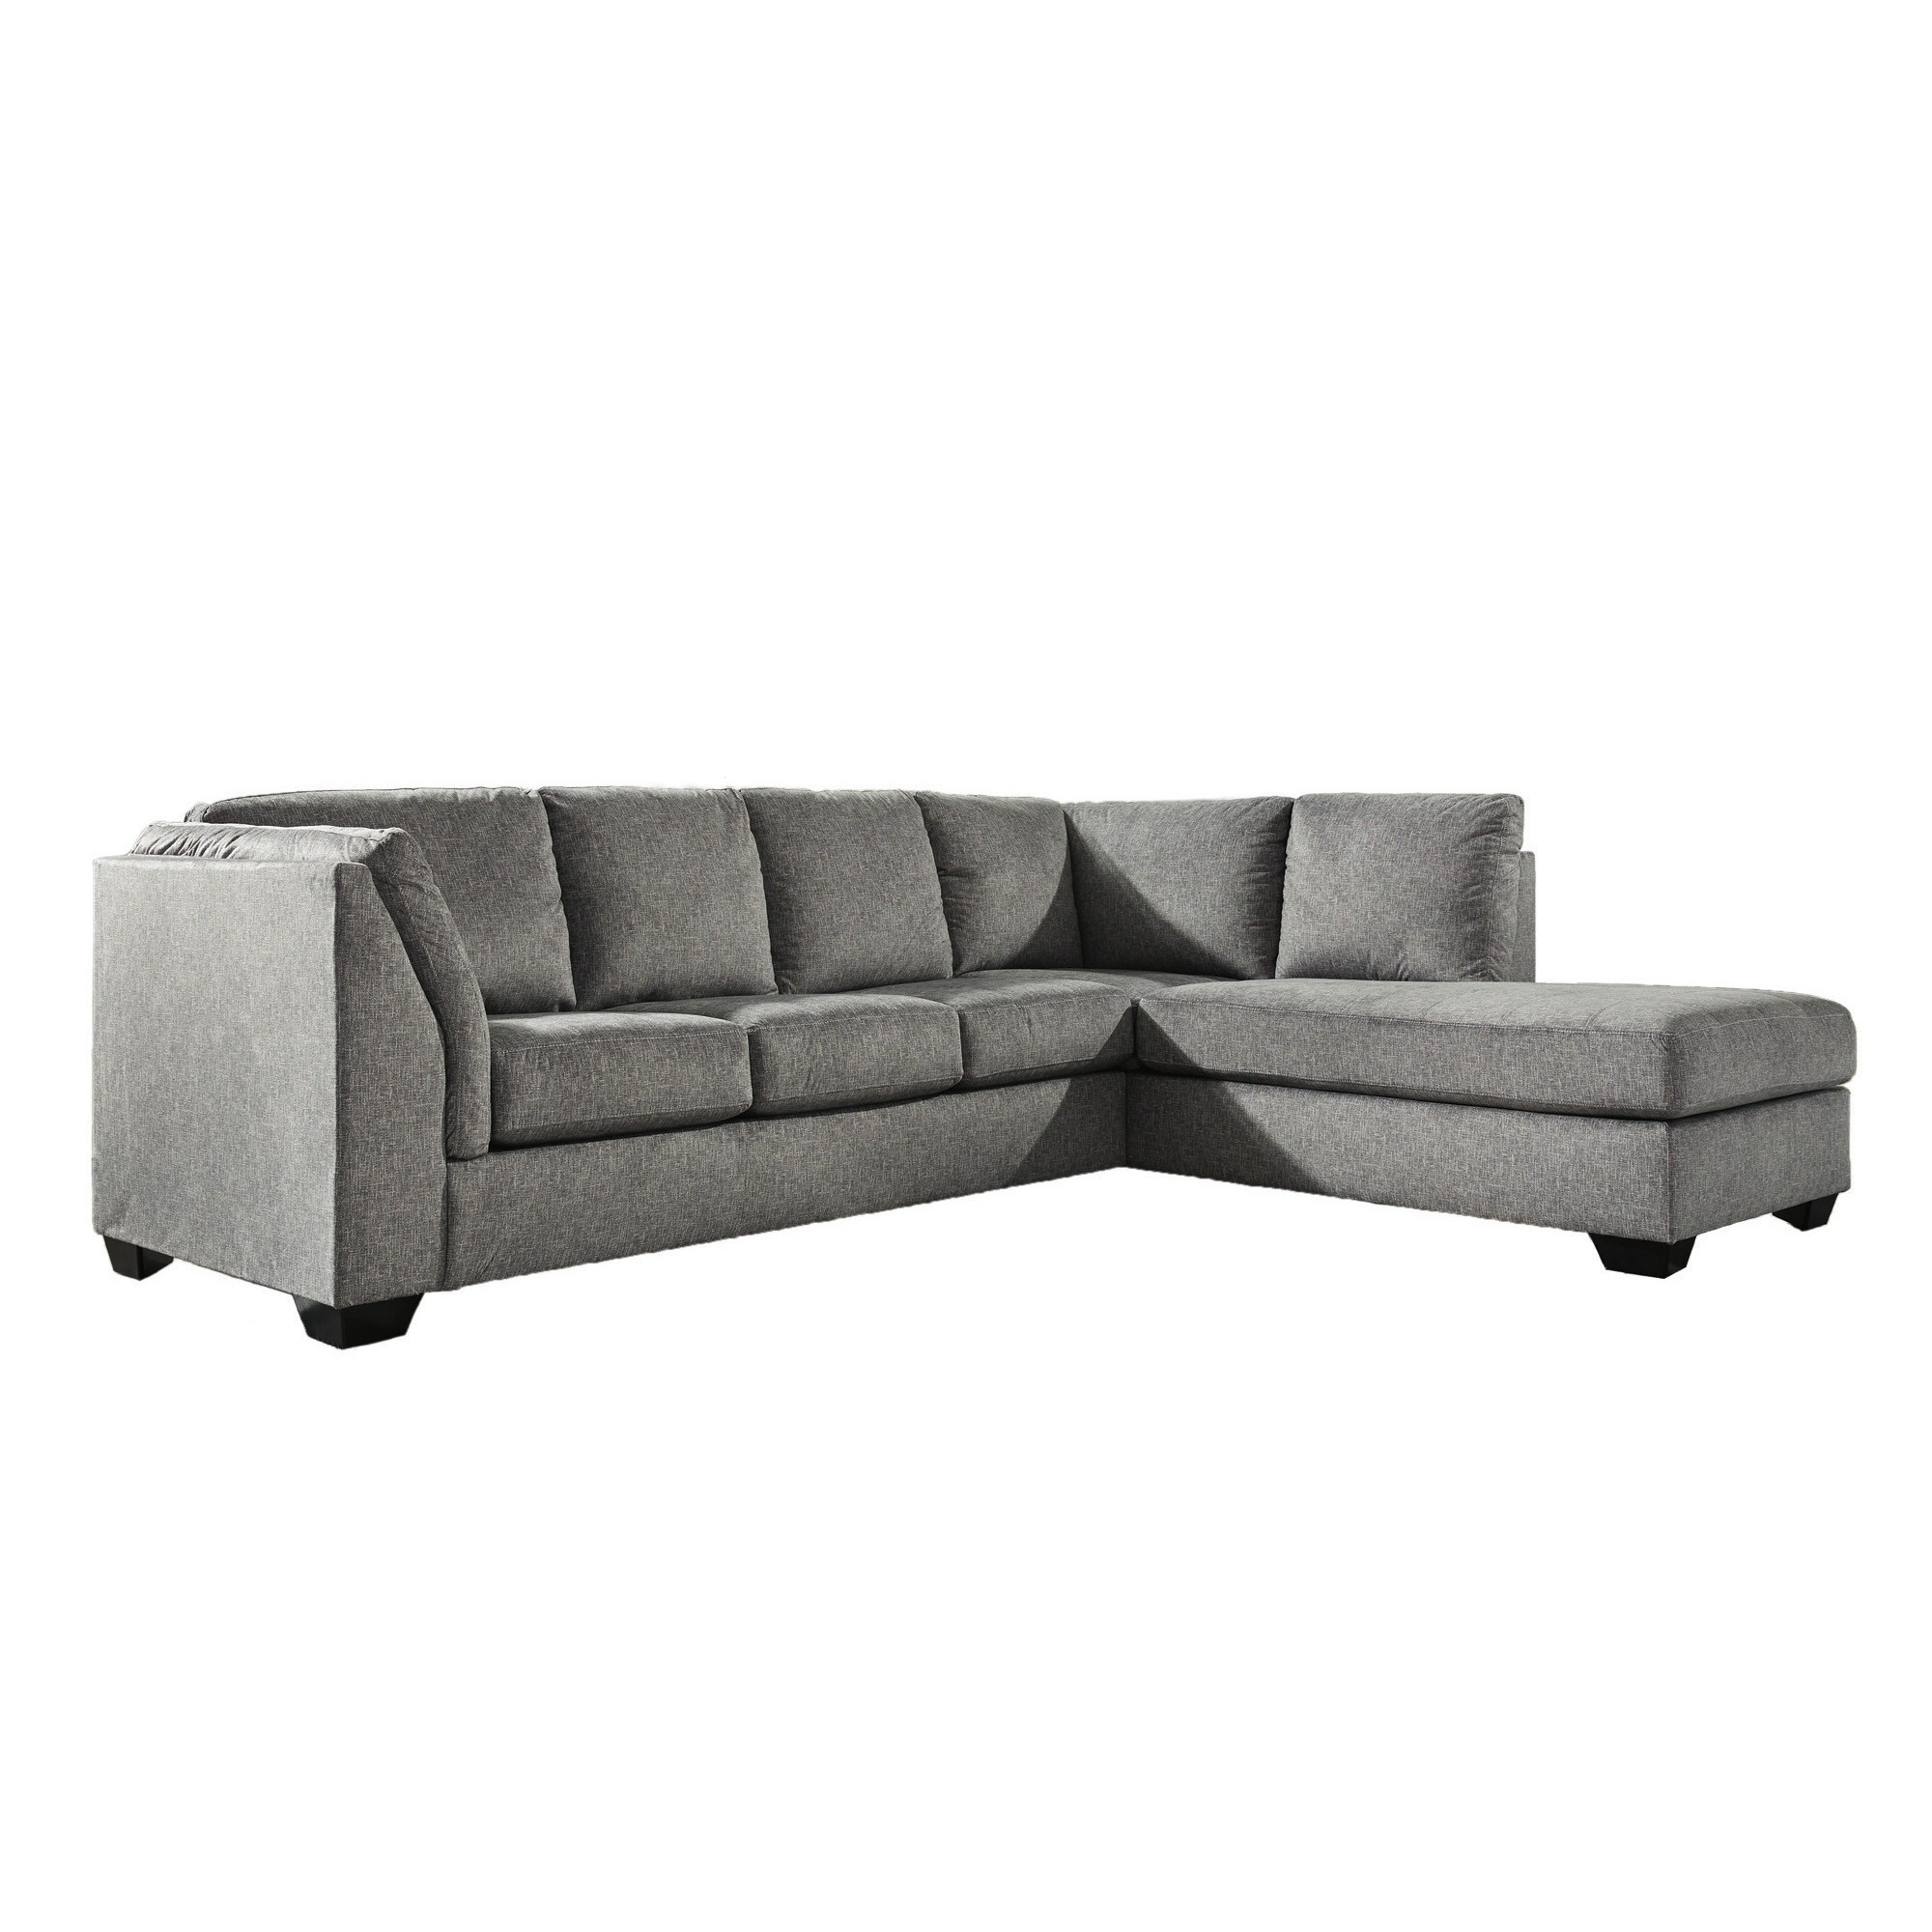 Tepperman's With Regard To Teppermans Sectional Sofas (View 14 of 20)